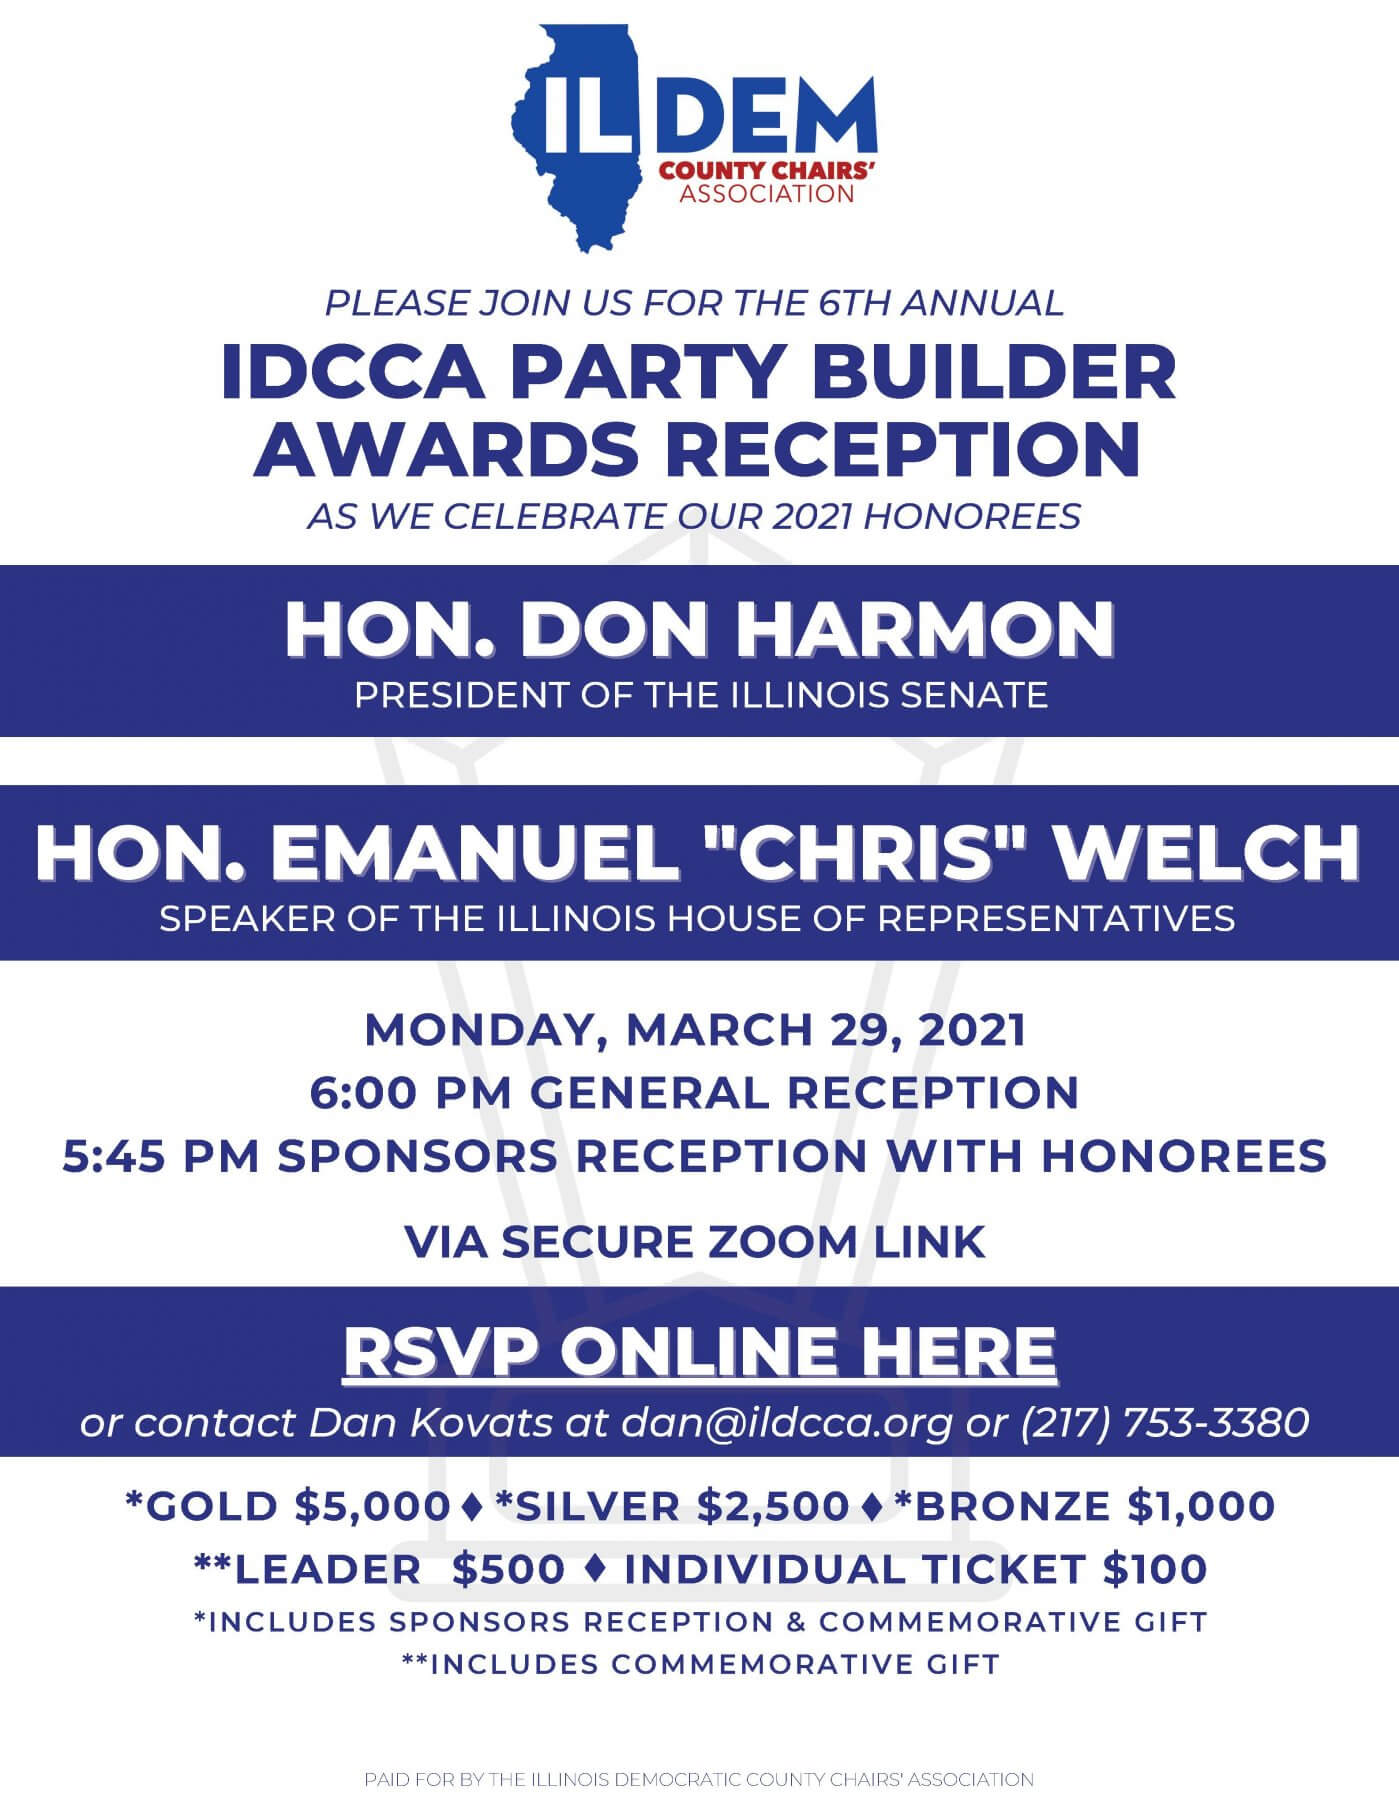 2021 IDCCA Party Builder Awards